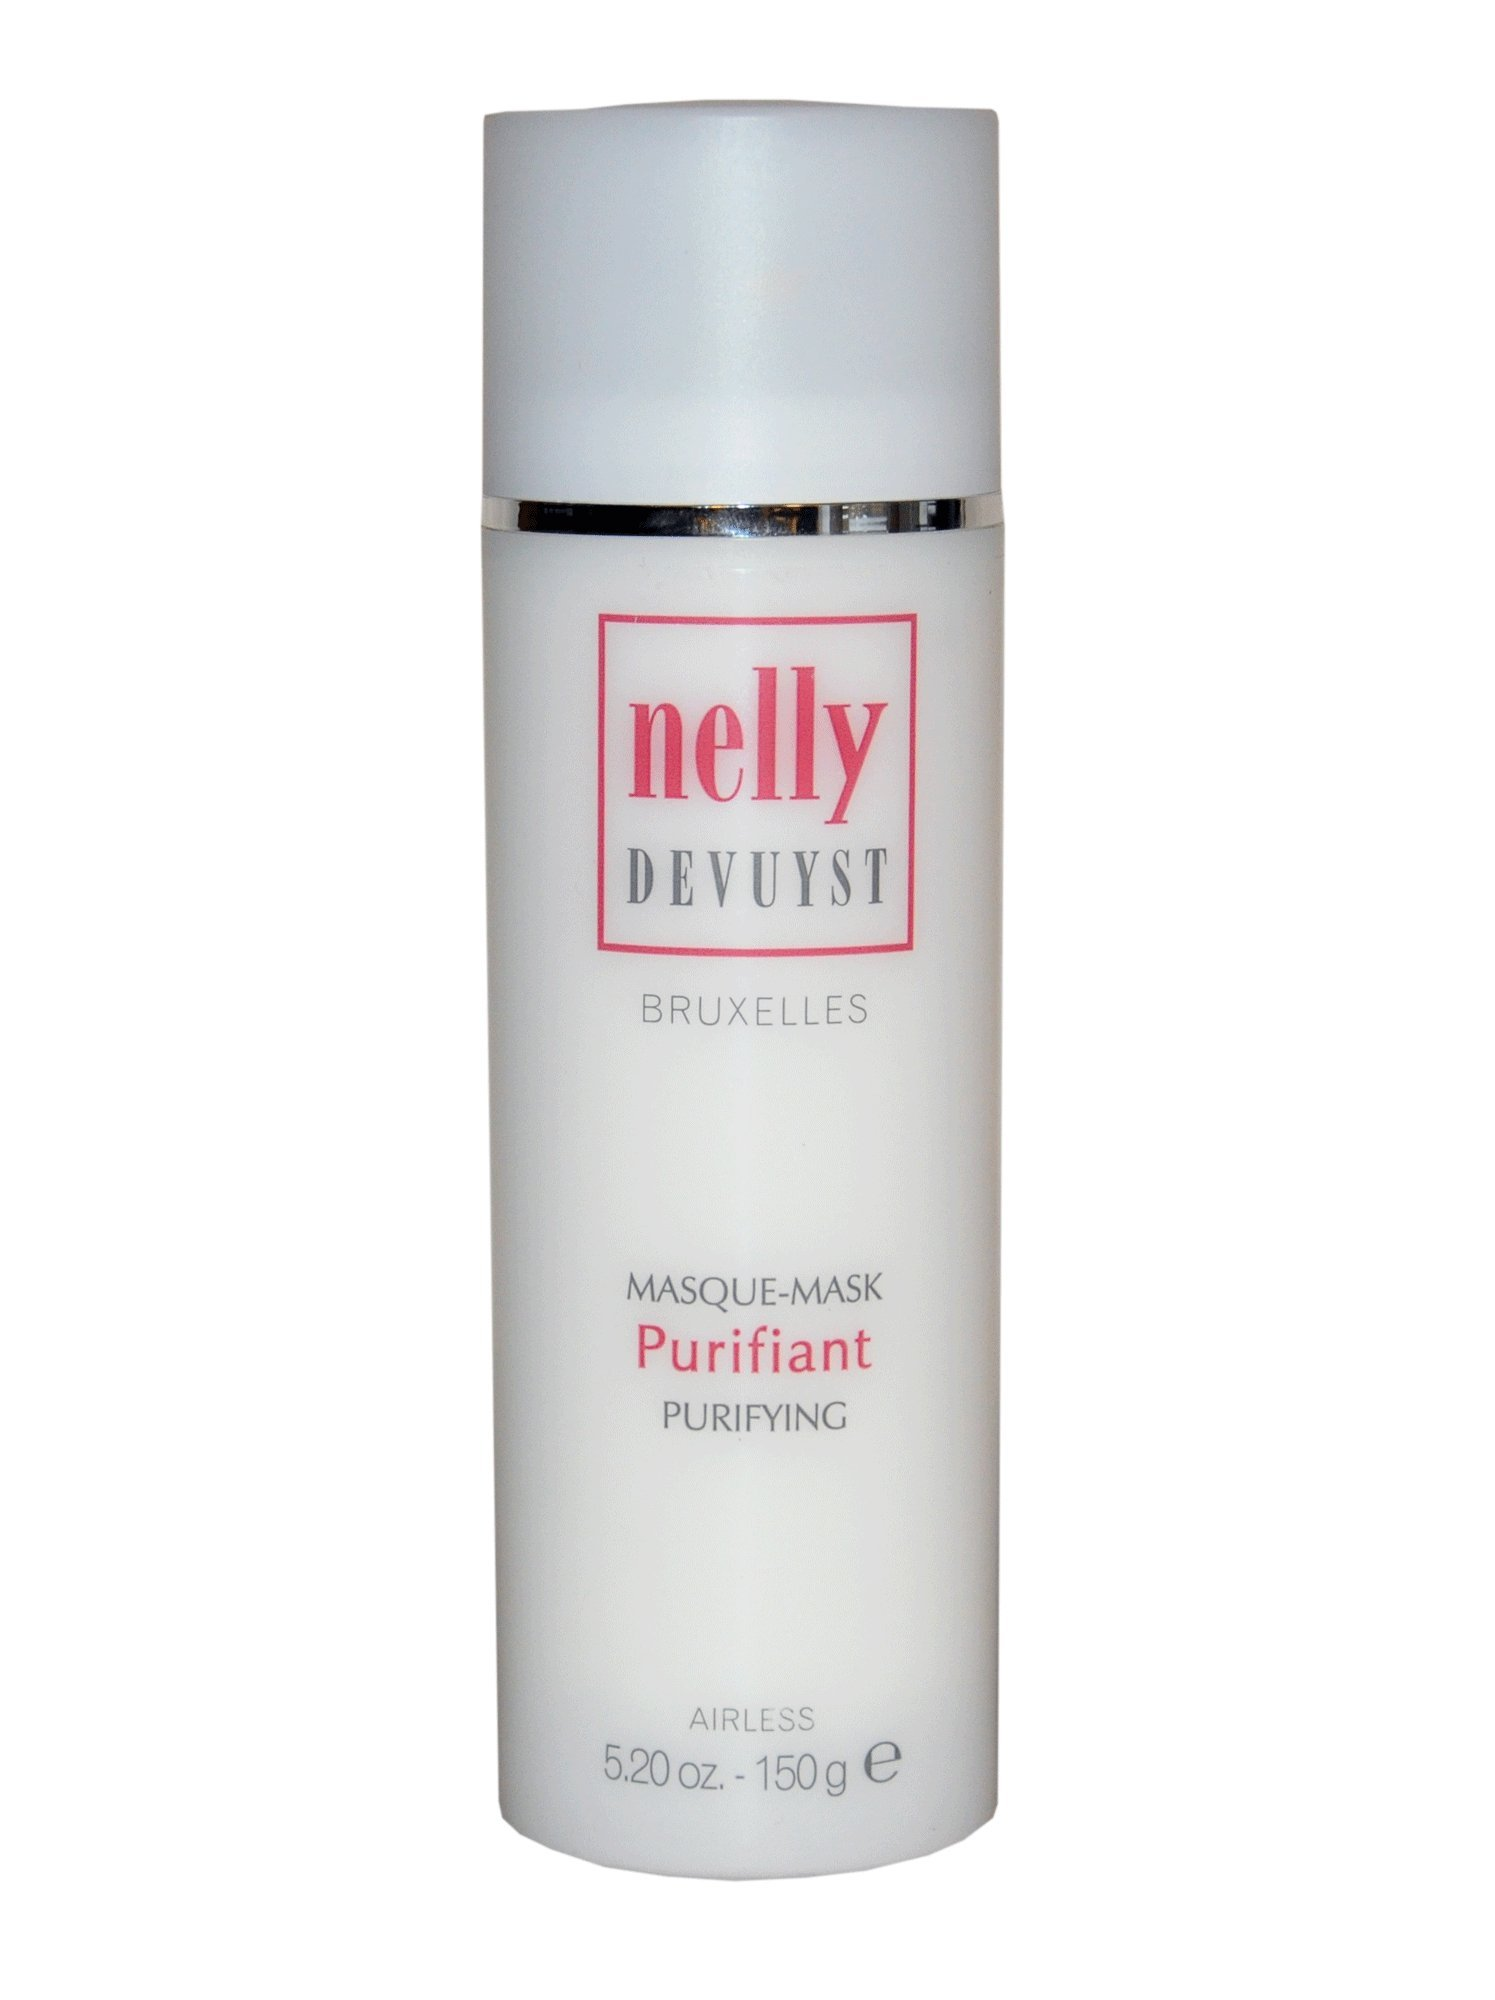 Nelly De Vuyst Purifying Mask 5.20 oz. SALON SIZE - NEW